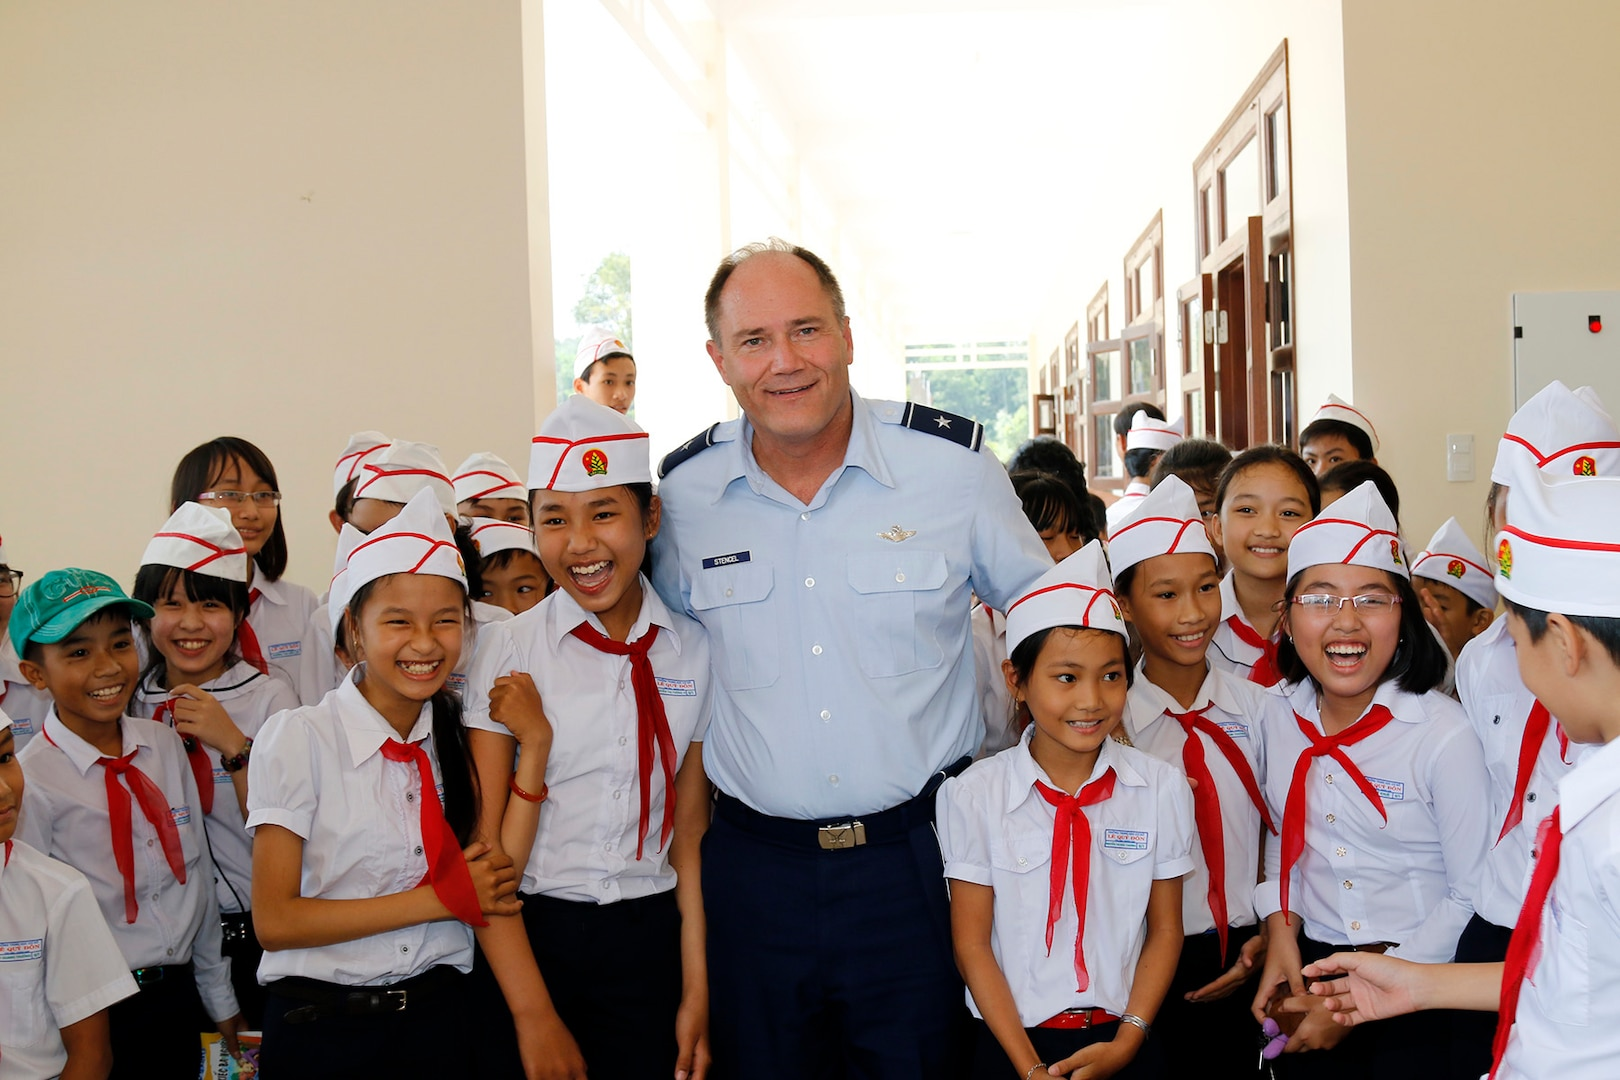 Brig. Gen. Michael E. Stencel, adjutant general, Oregon, poses with students at their new intermediate school in Phu Tinh village in the Quang Nam Province of Vietnam, Oct. 21,  2015, following a ribbon cutting ceremony. The new school was built in cooperation between the U.S. and Vietnam and has a secondary-use as a shelter during natural disasters.